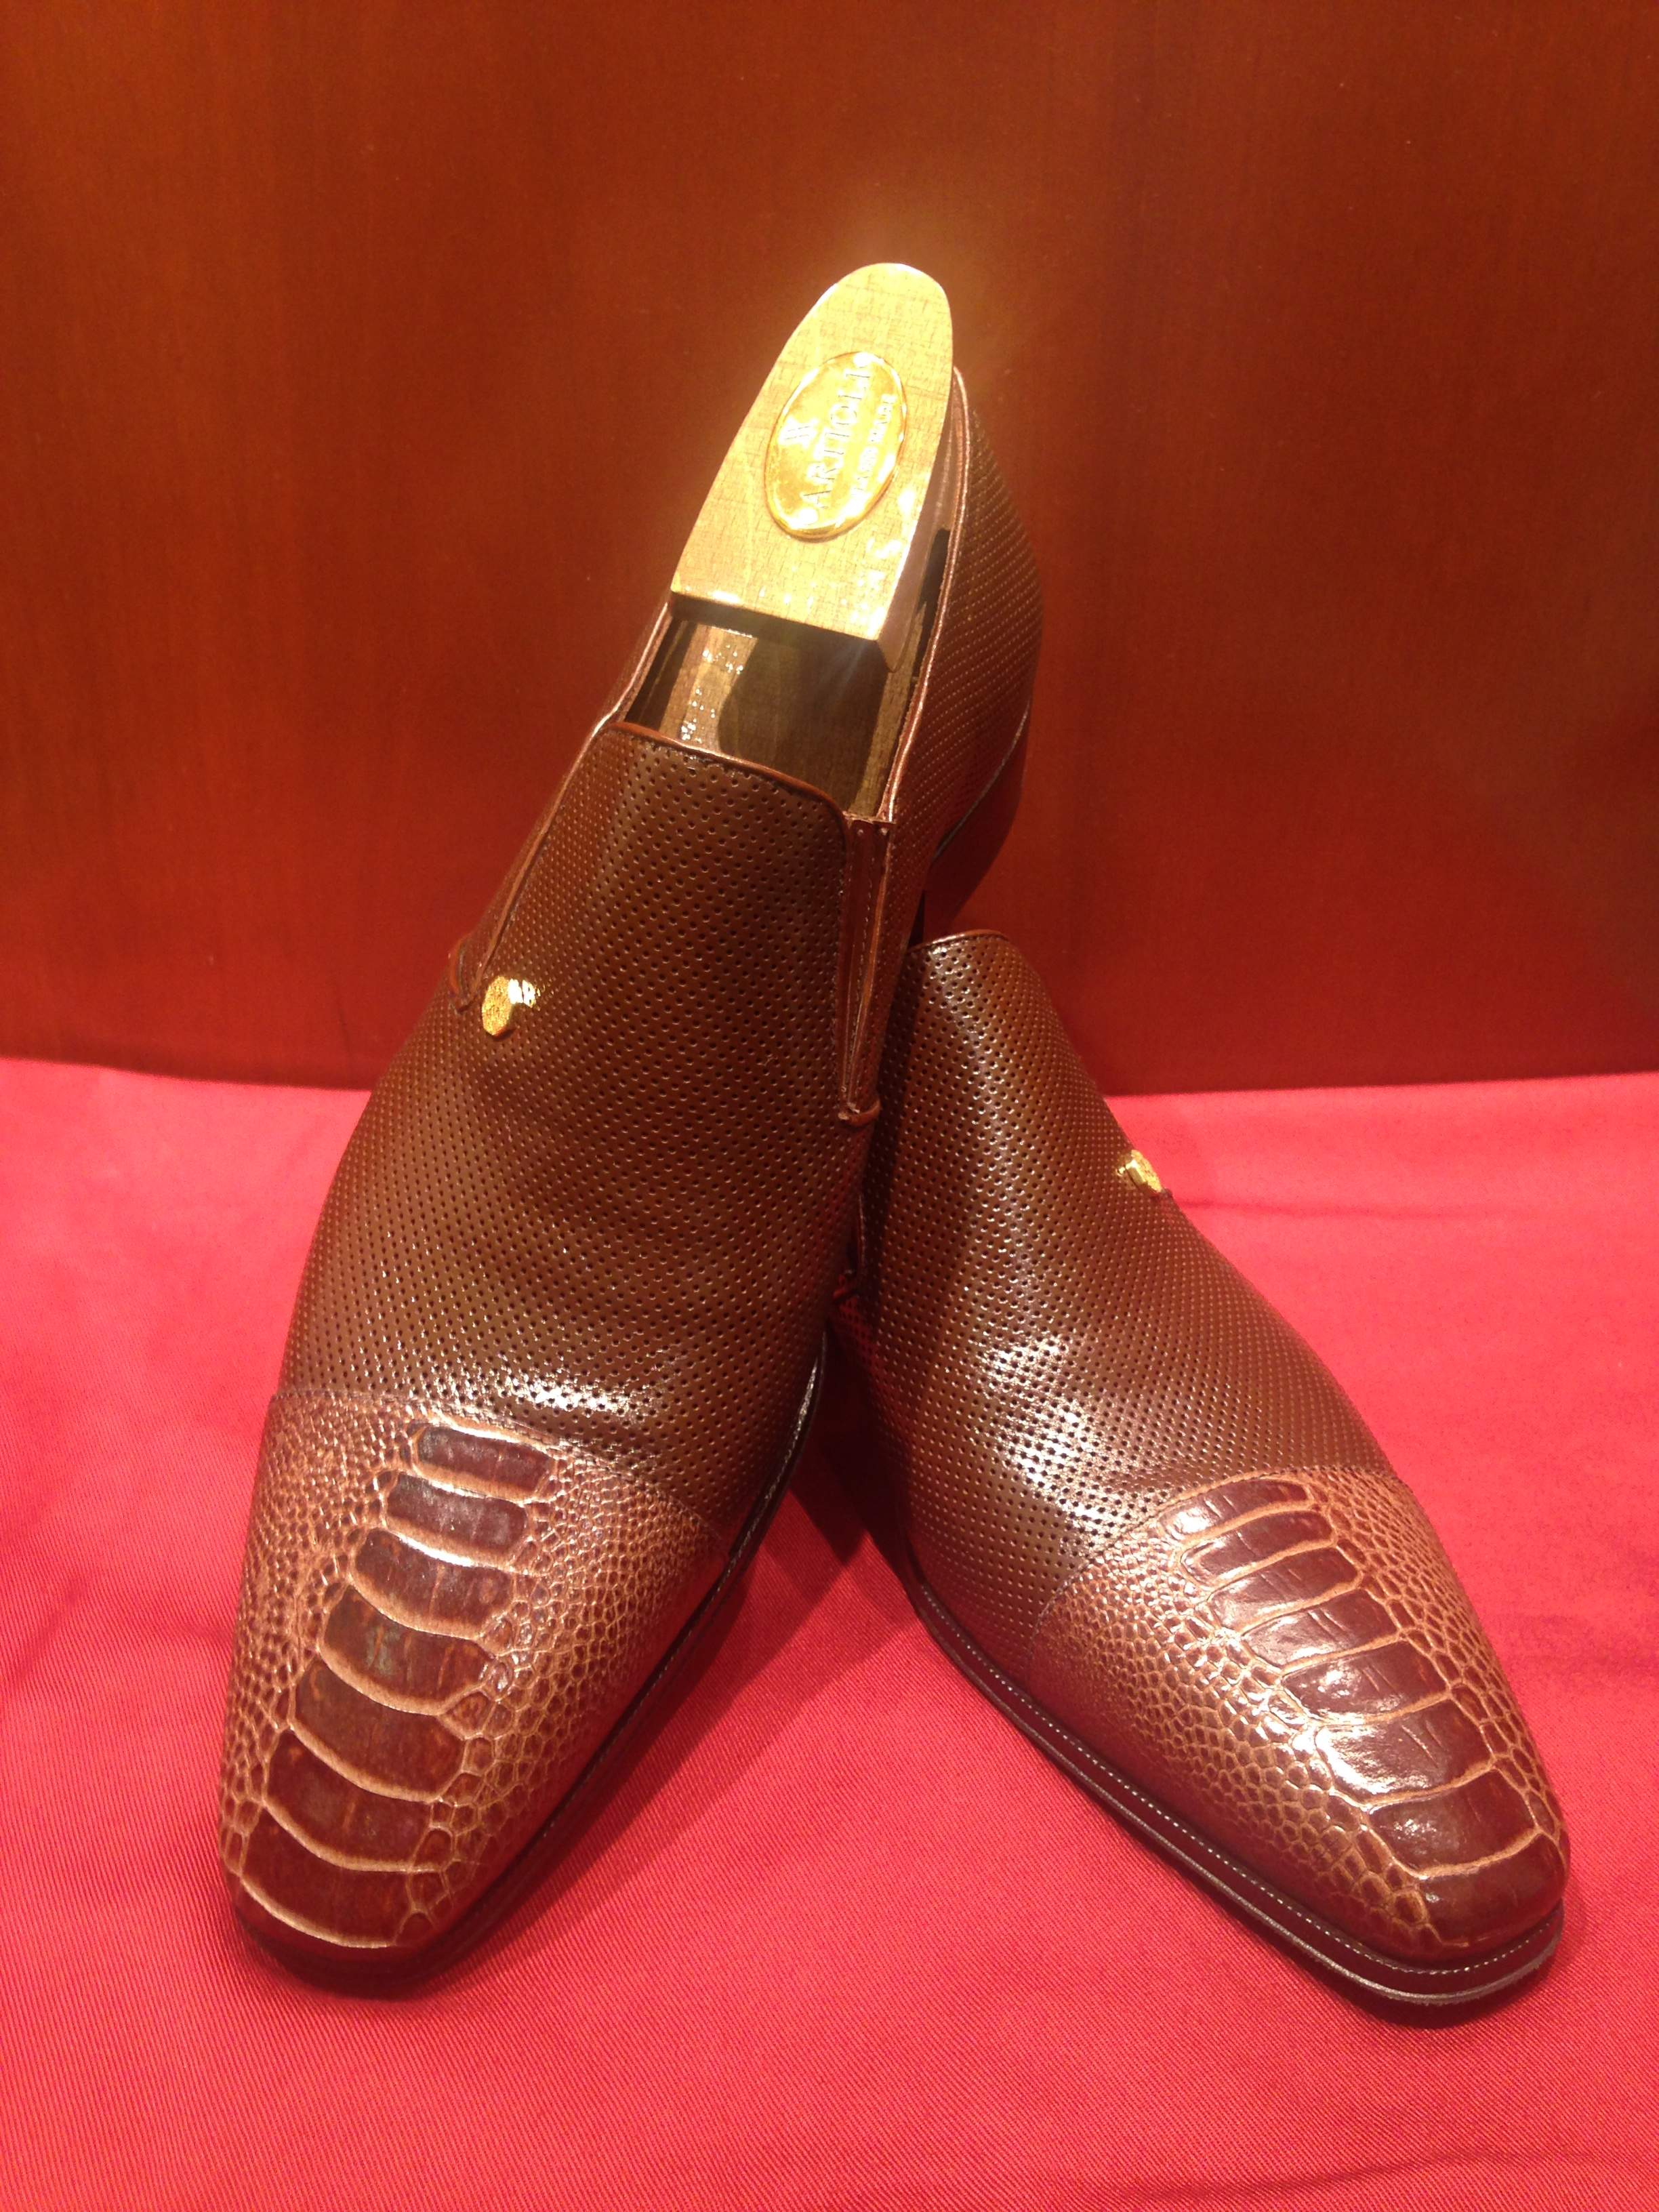 Slip-on Model 6P641 Brown